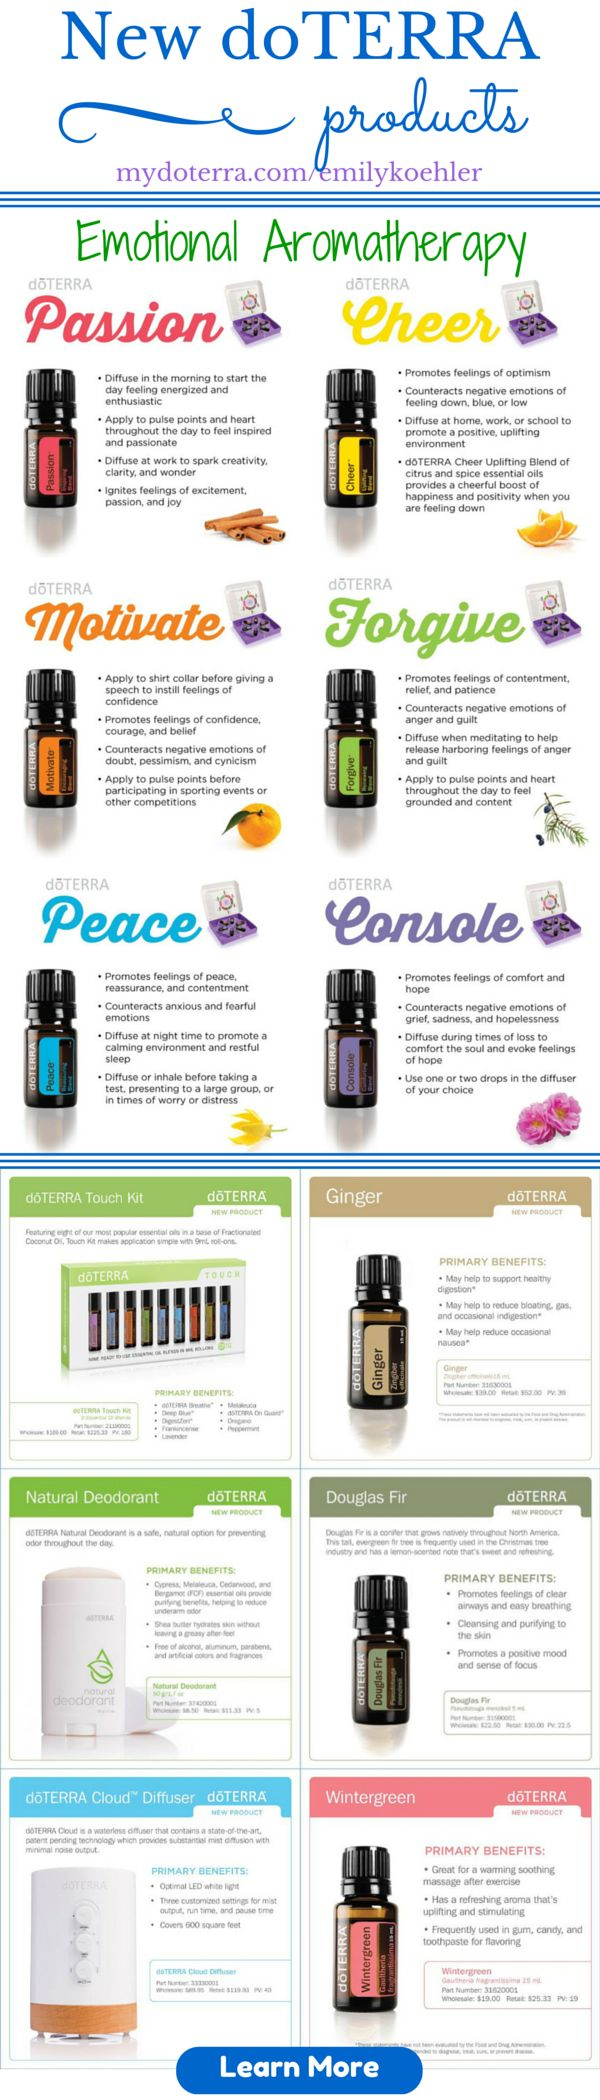 Brand new doTERRA essential oils and products release in September 2015! The new…